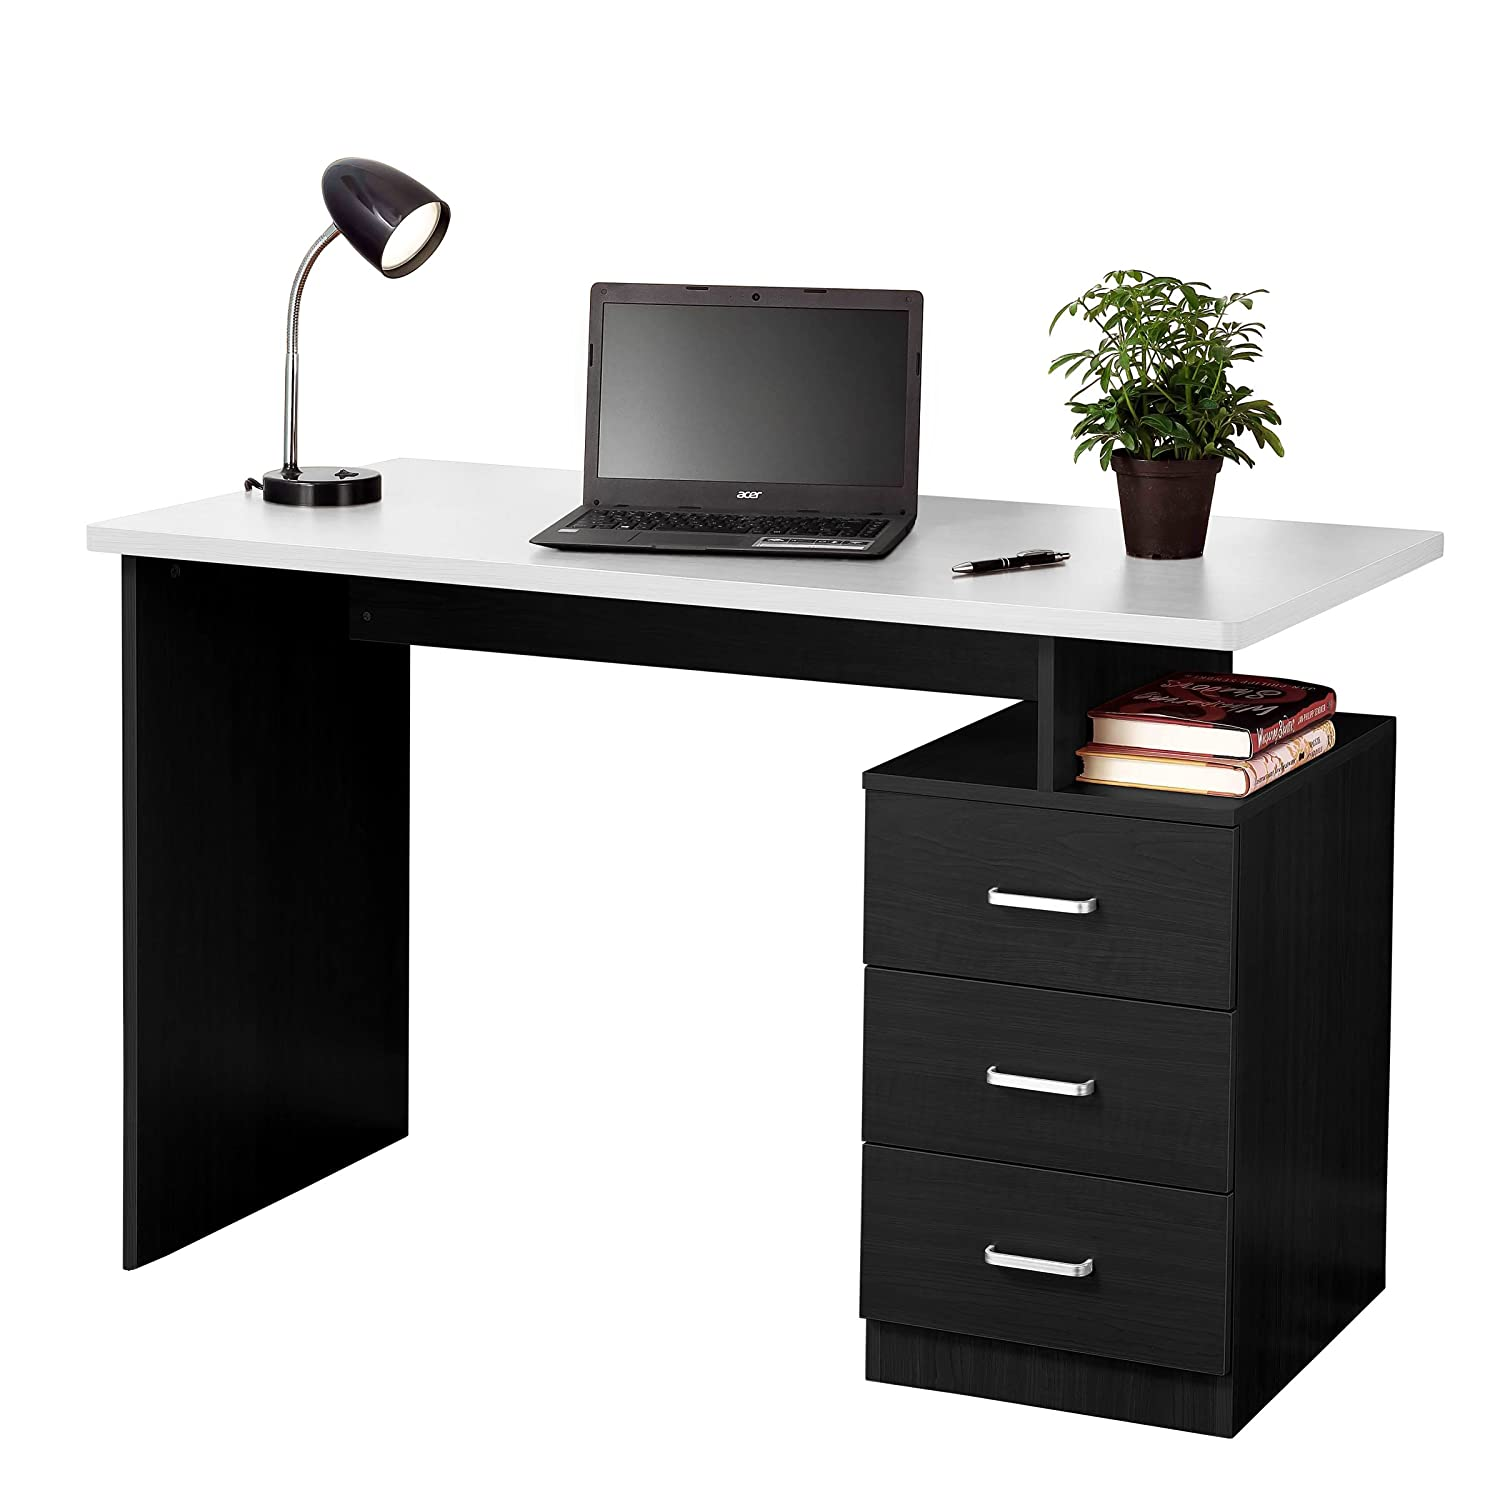 Beau Amazon.com: Fineboard Home Office Desk With 3 Drawers, Black/White: Kitchen  U0026 Dining